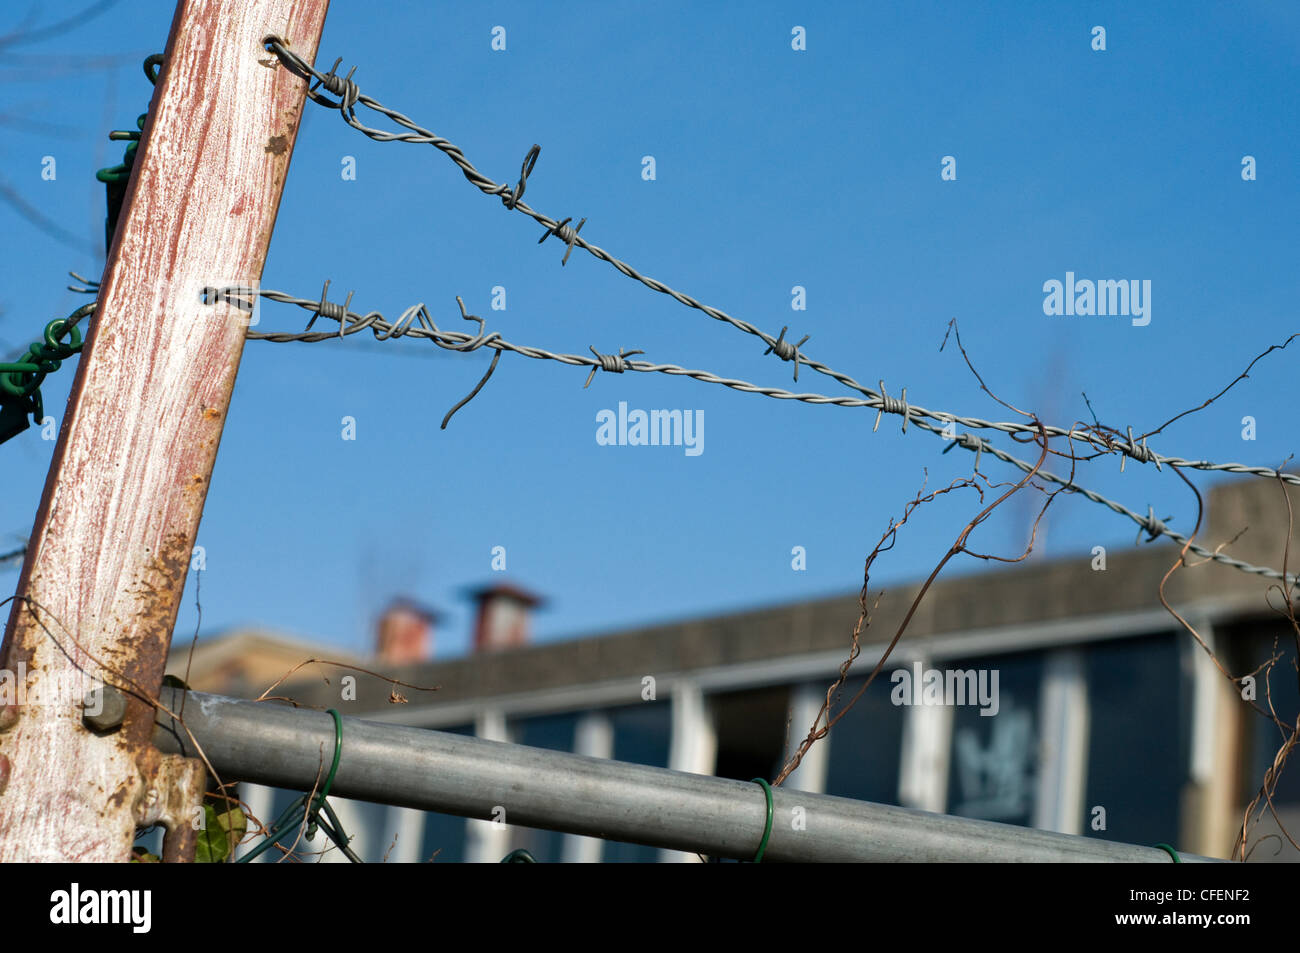 A section of barbed wire in front of a derelict building - Stock Image